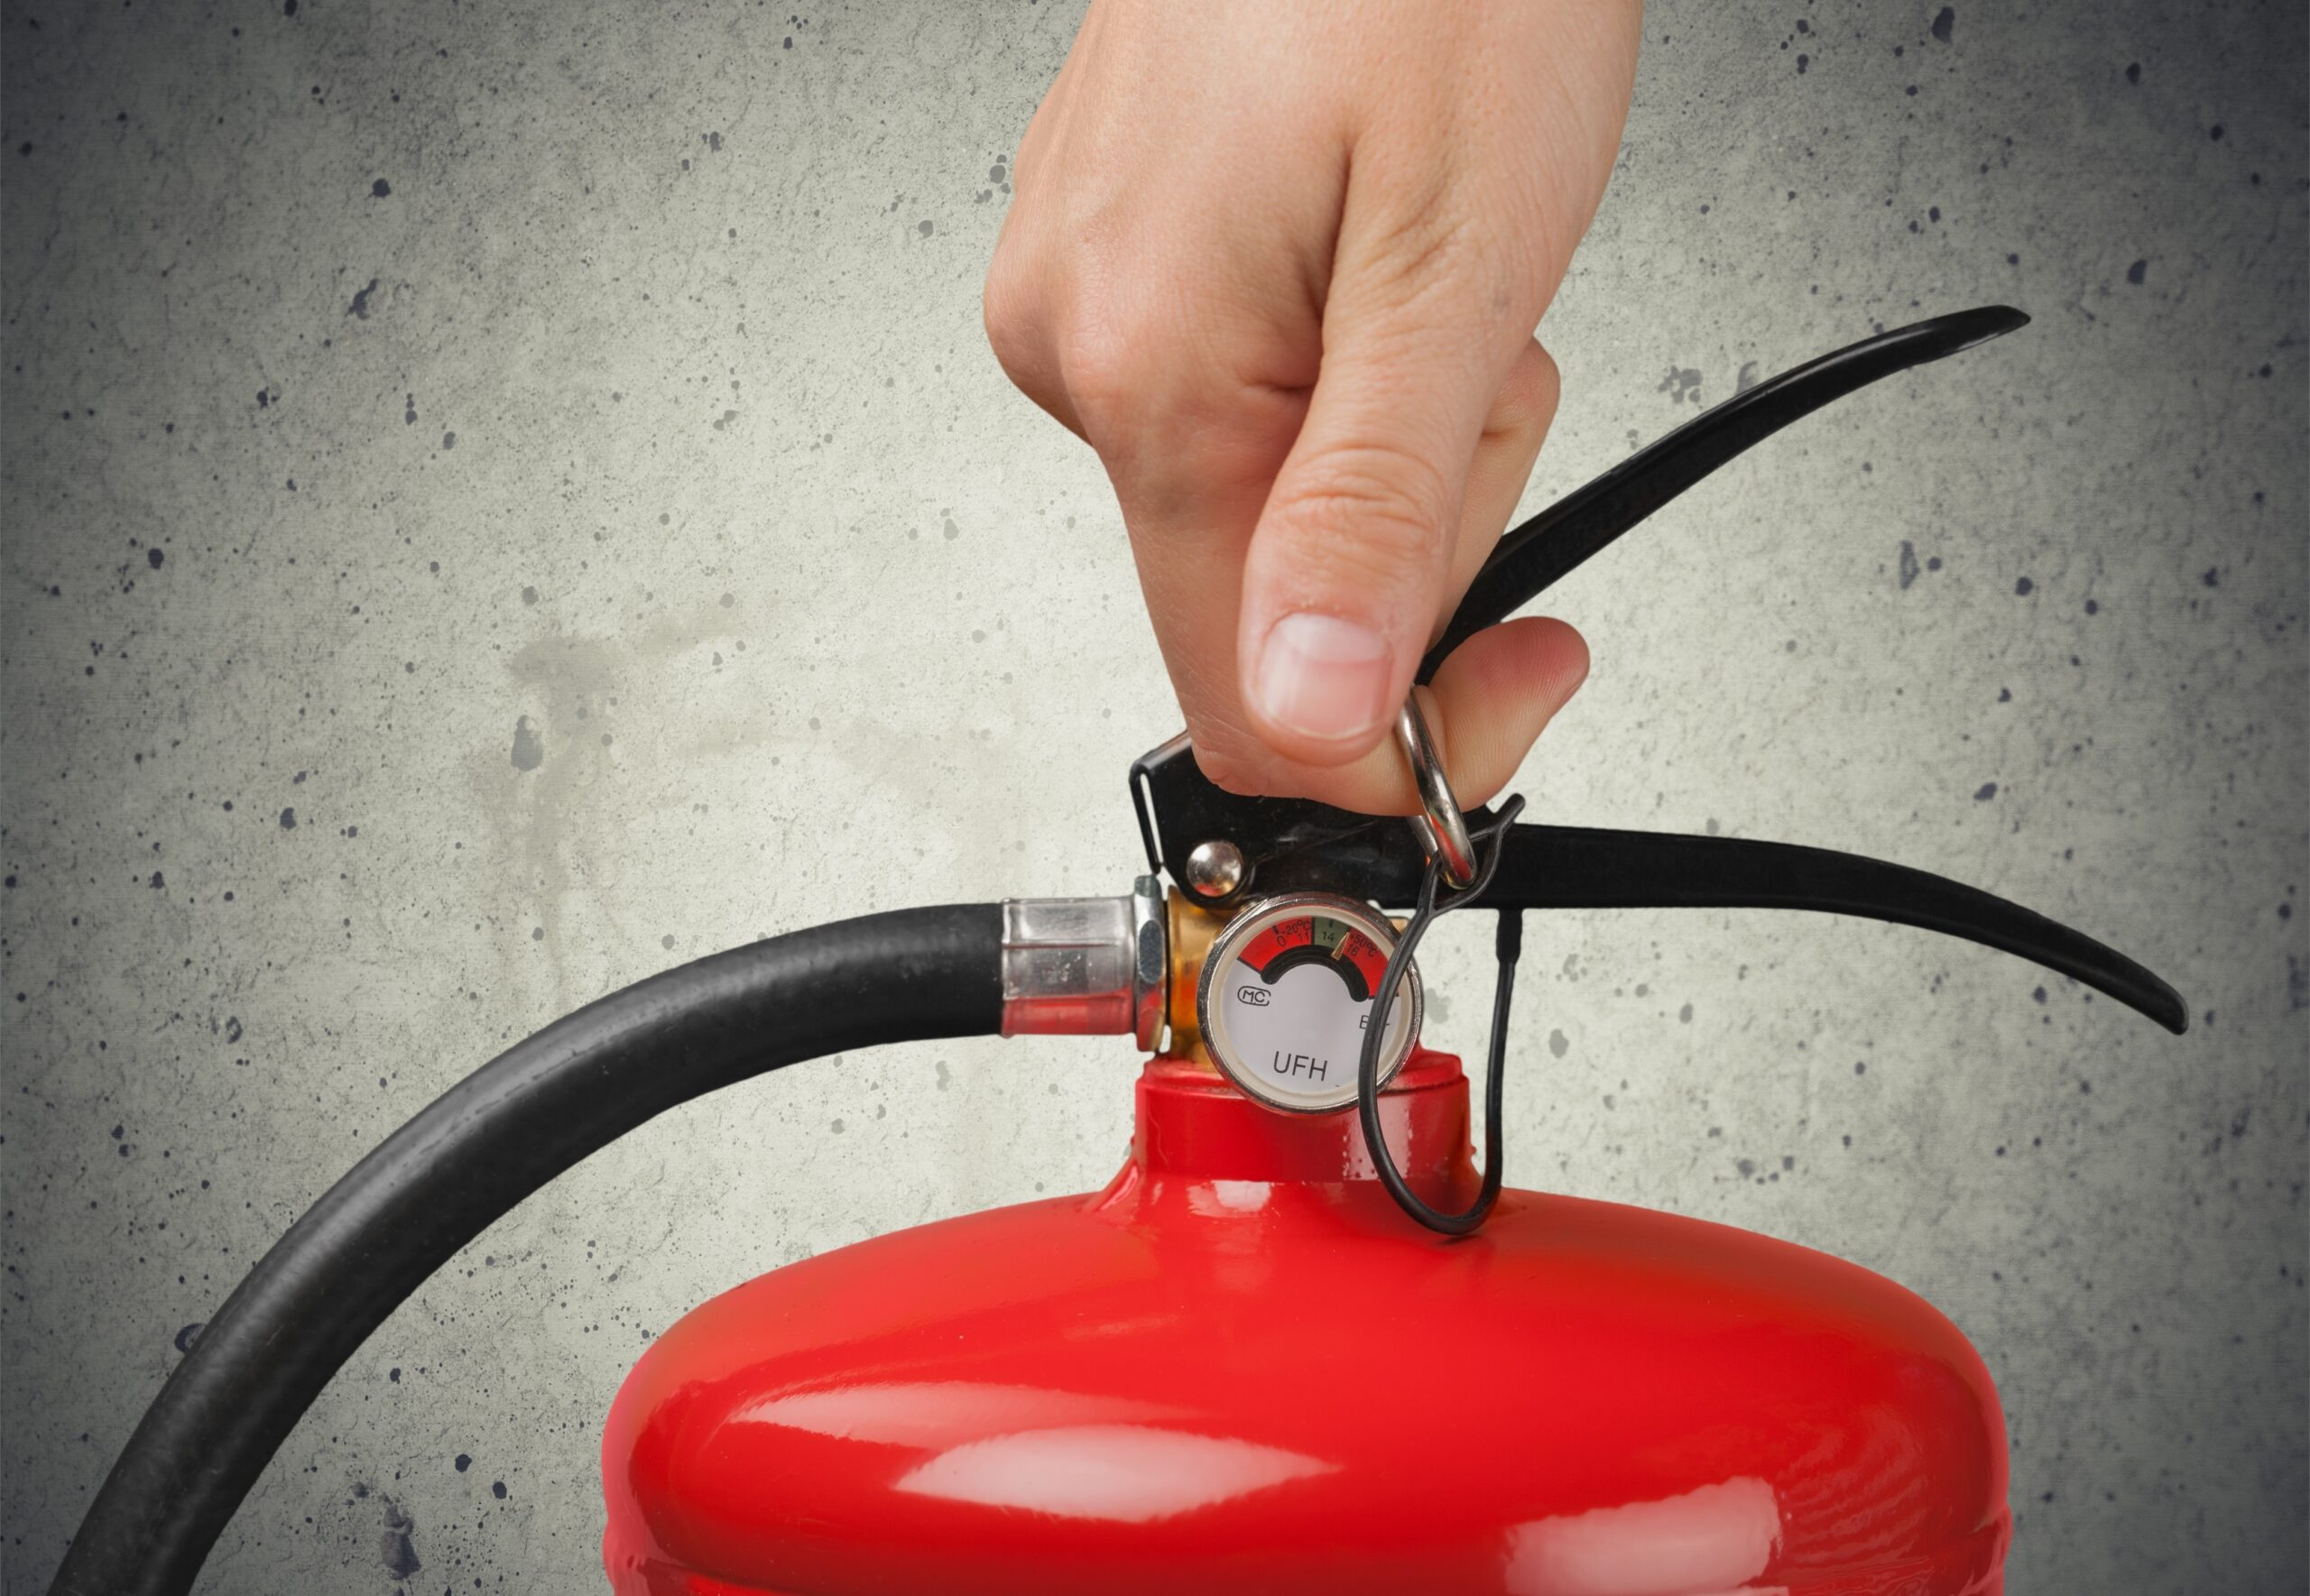 person holding fire extinguisher for home fire safety